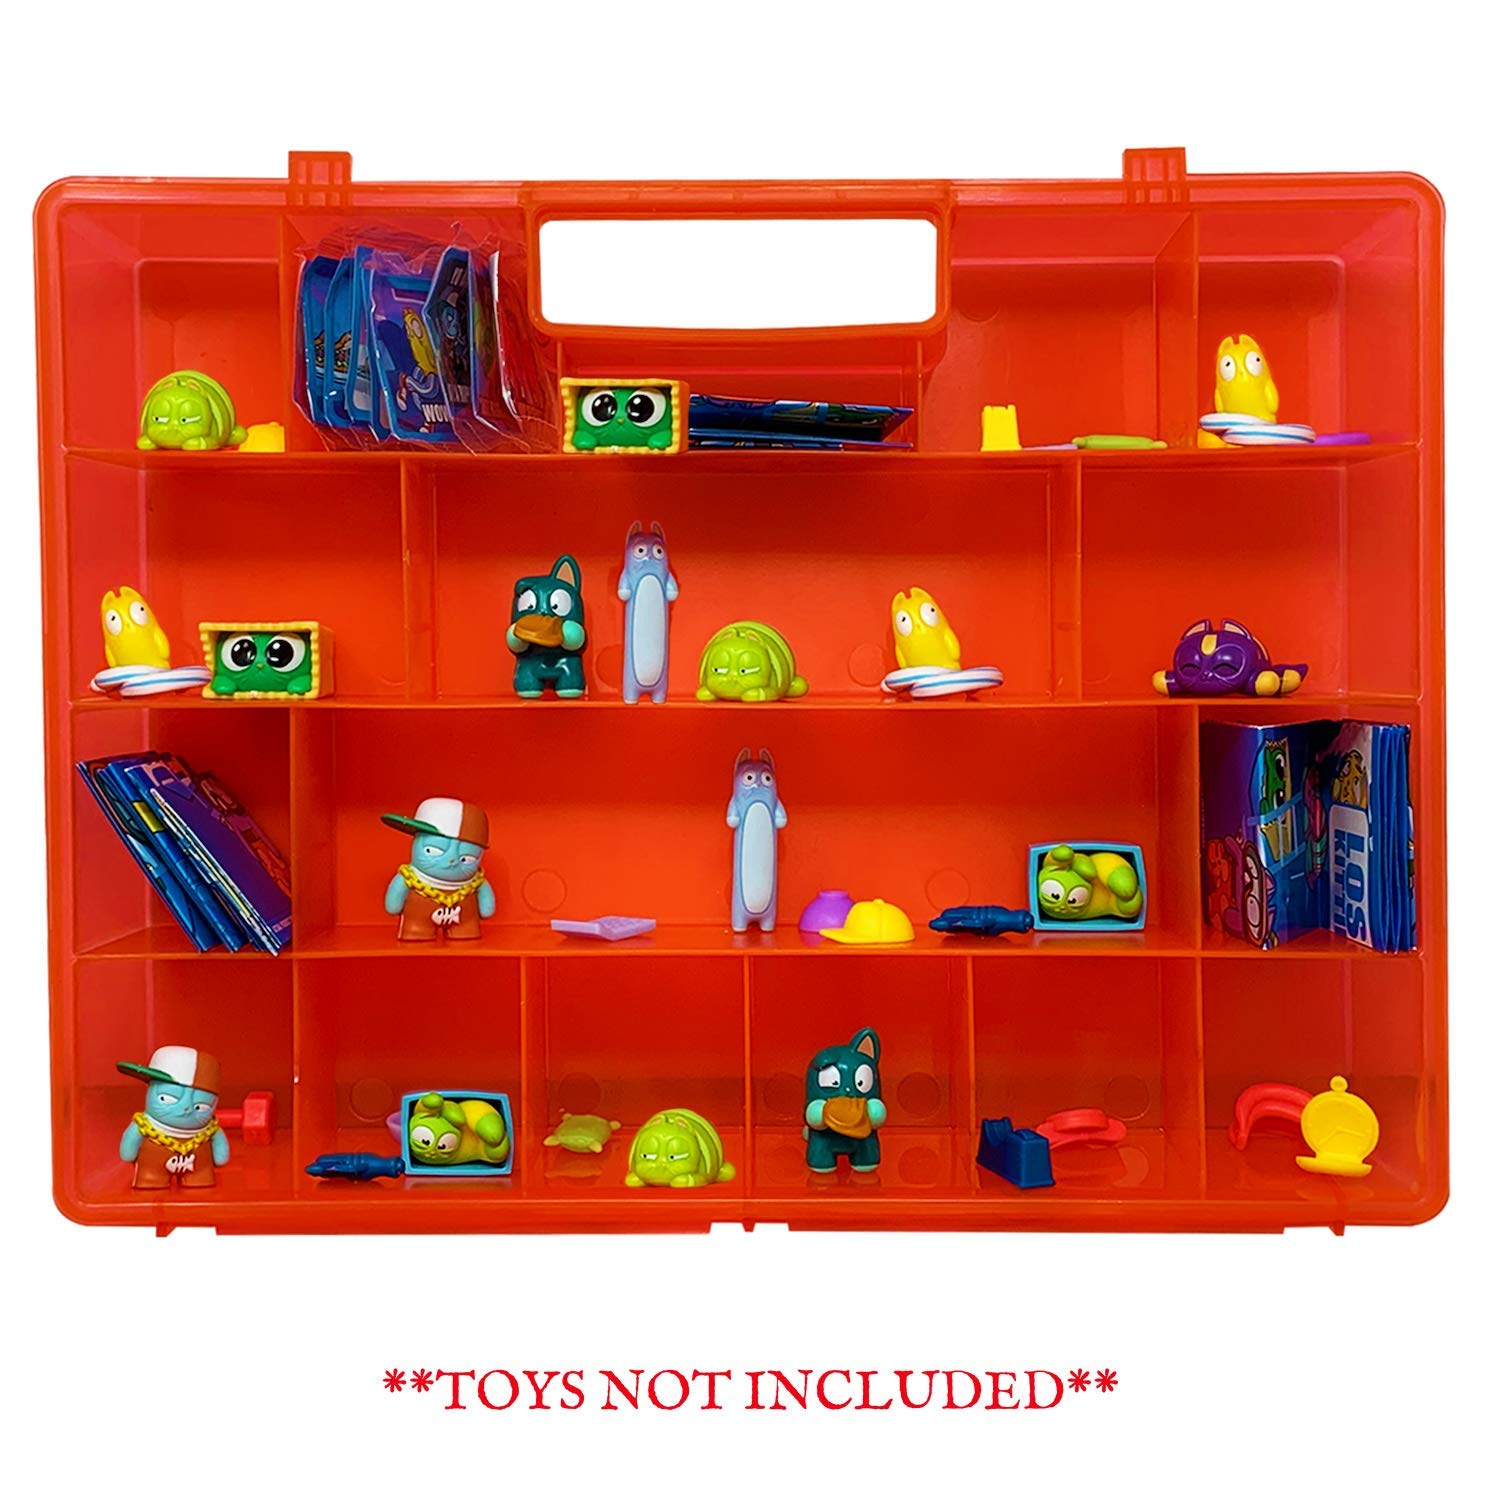 Compatible Carrying Case /& Toy Accessory for Lost Kitties Toys Life Made Better Red Toy Storage Organization Box Not Created by Lost Kitties Made